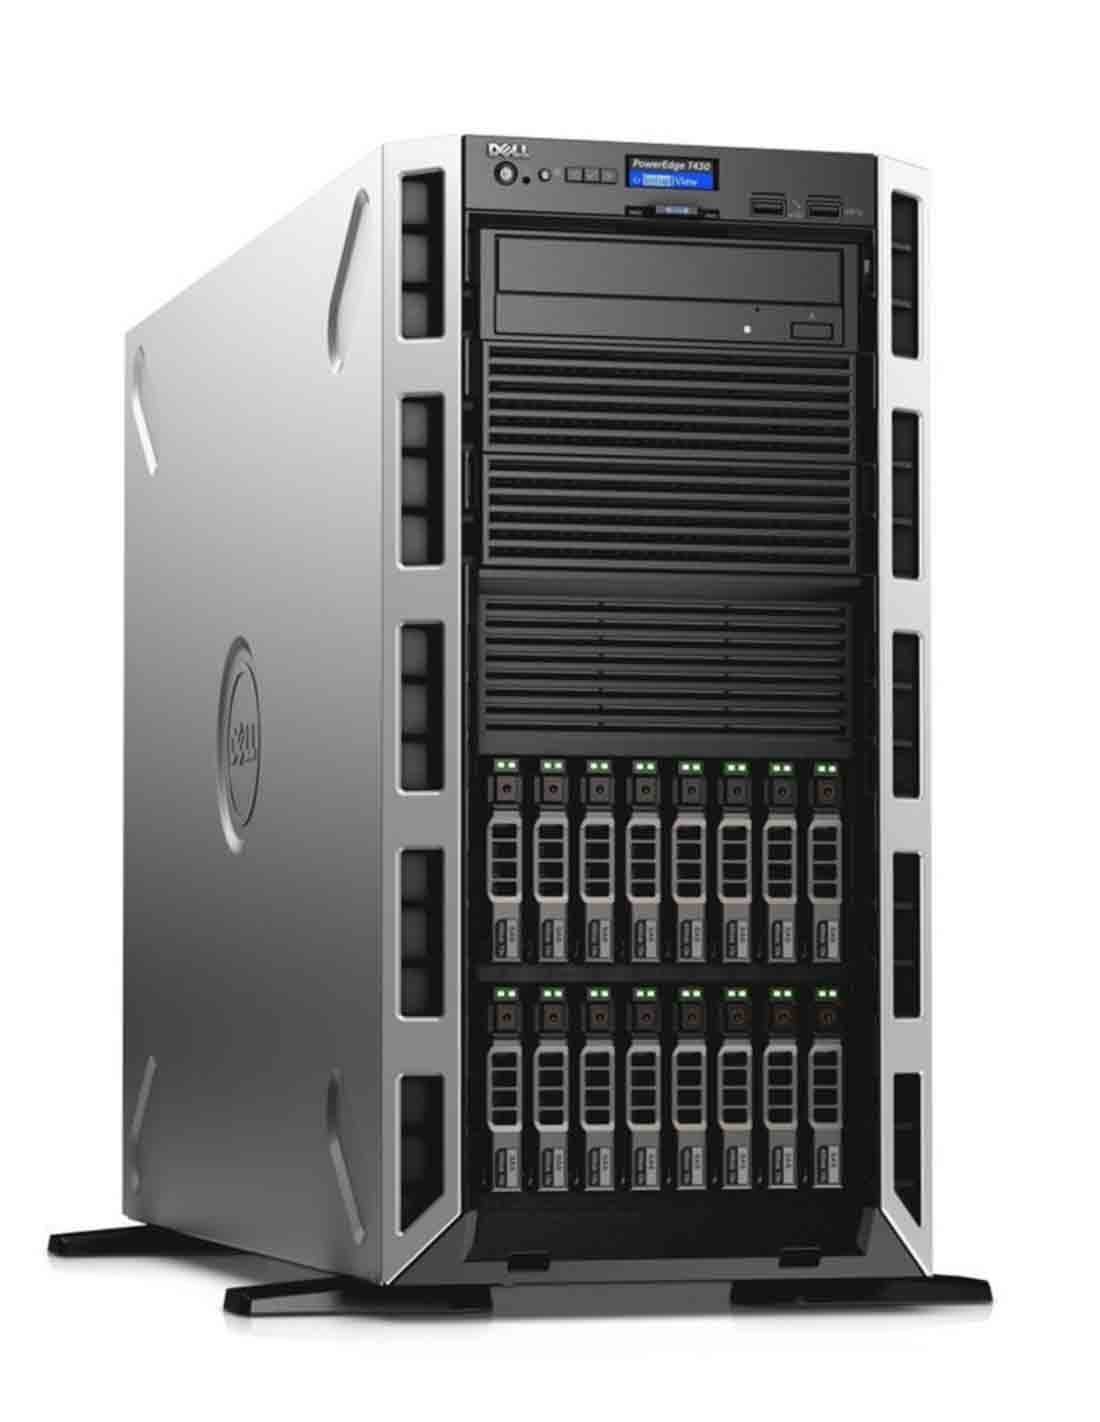 Dell PowerEdge T430 Tower Server Intel Xeon E5-2650v3 Buy Online at a Cheap Price in Dubai